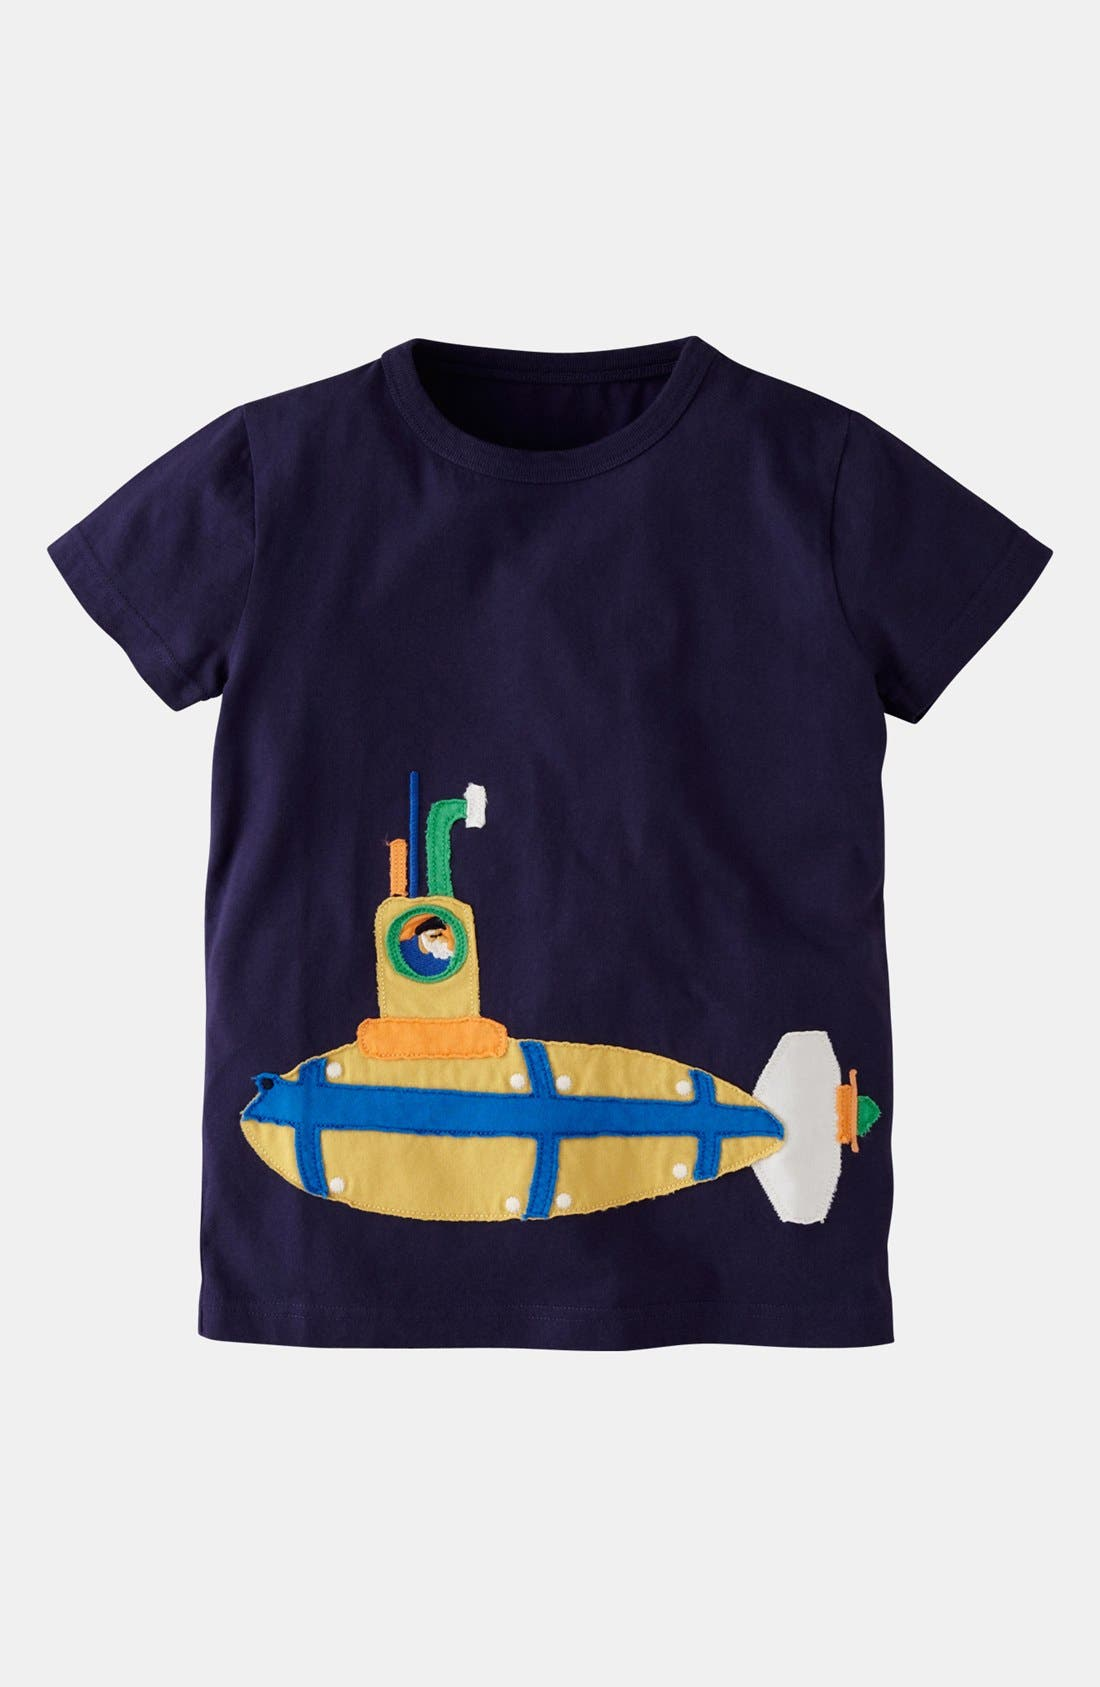 'Vehicle' T-Shirt,                         Main,                         color, Navy/ Submarine